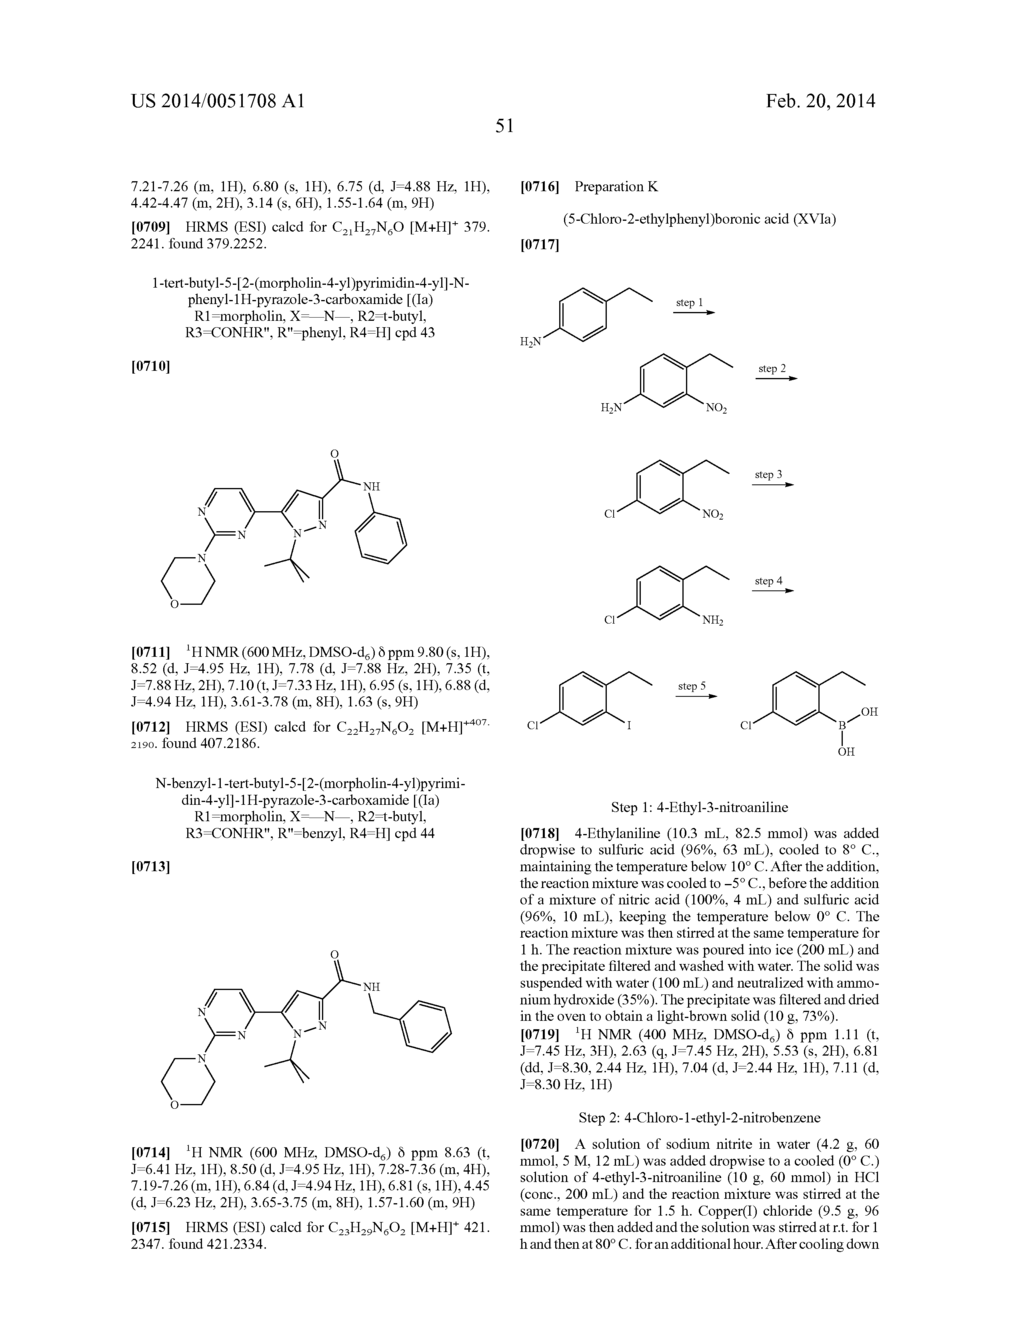 PYRAZOLYL-PYRIMIDINE DERIVATIVES AS KINASE INHIBITORS - diagram, schematic, and image 52